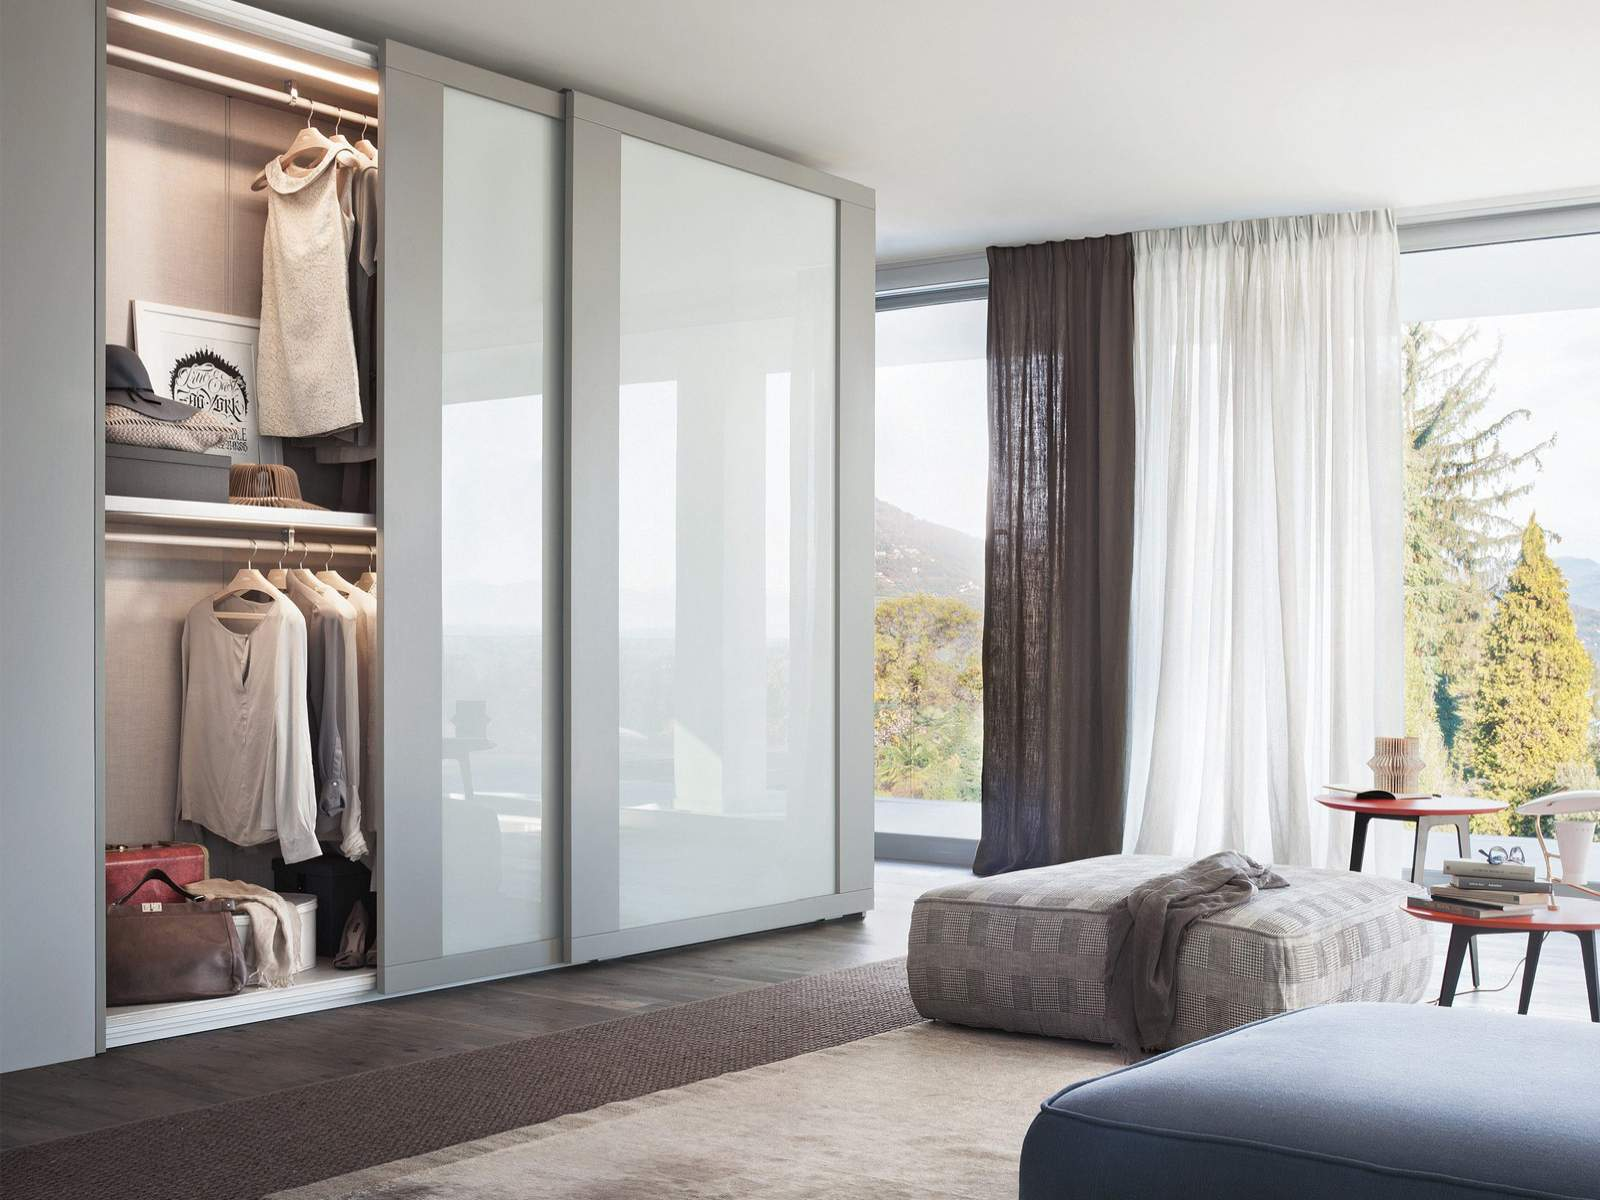 19 Great Ideas Of Wardrobe With Sliding Doors Homedizz